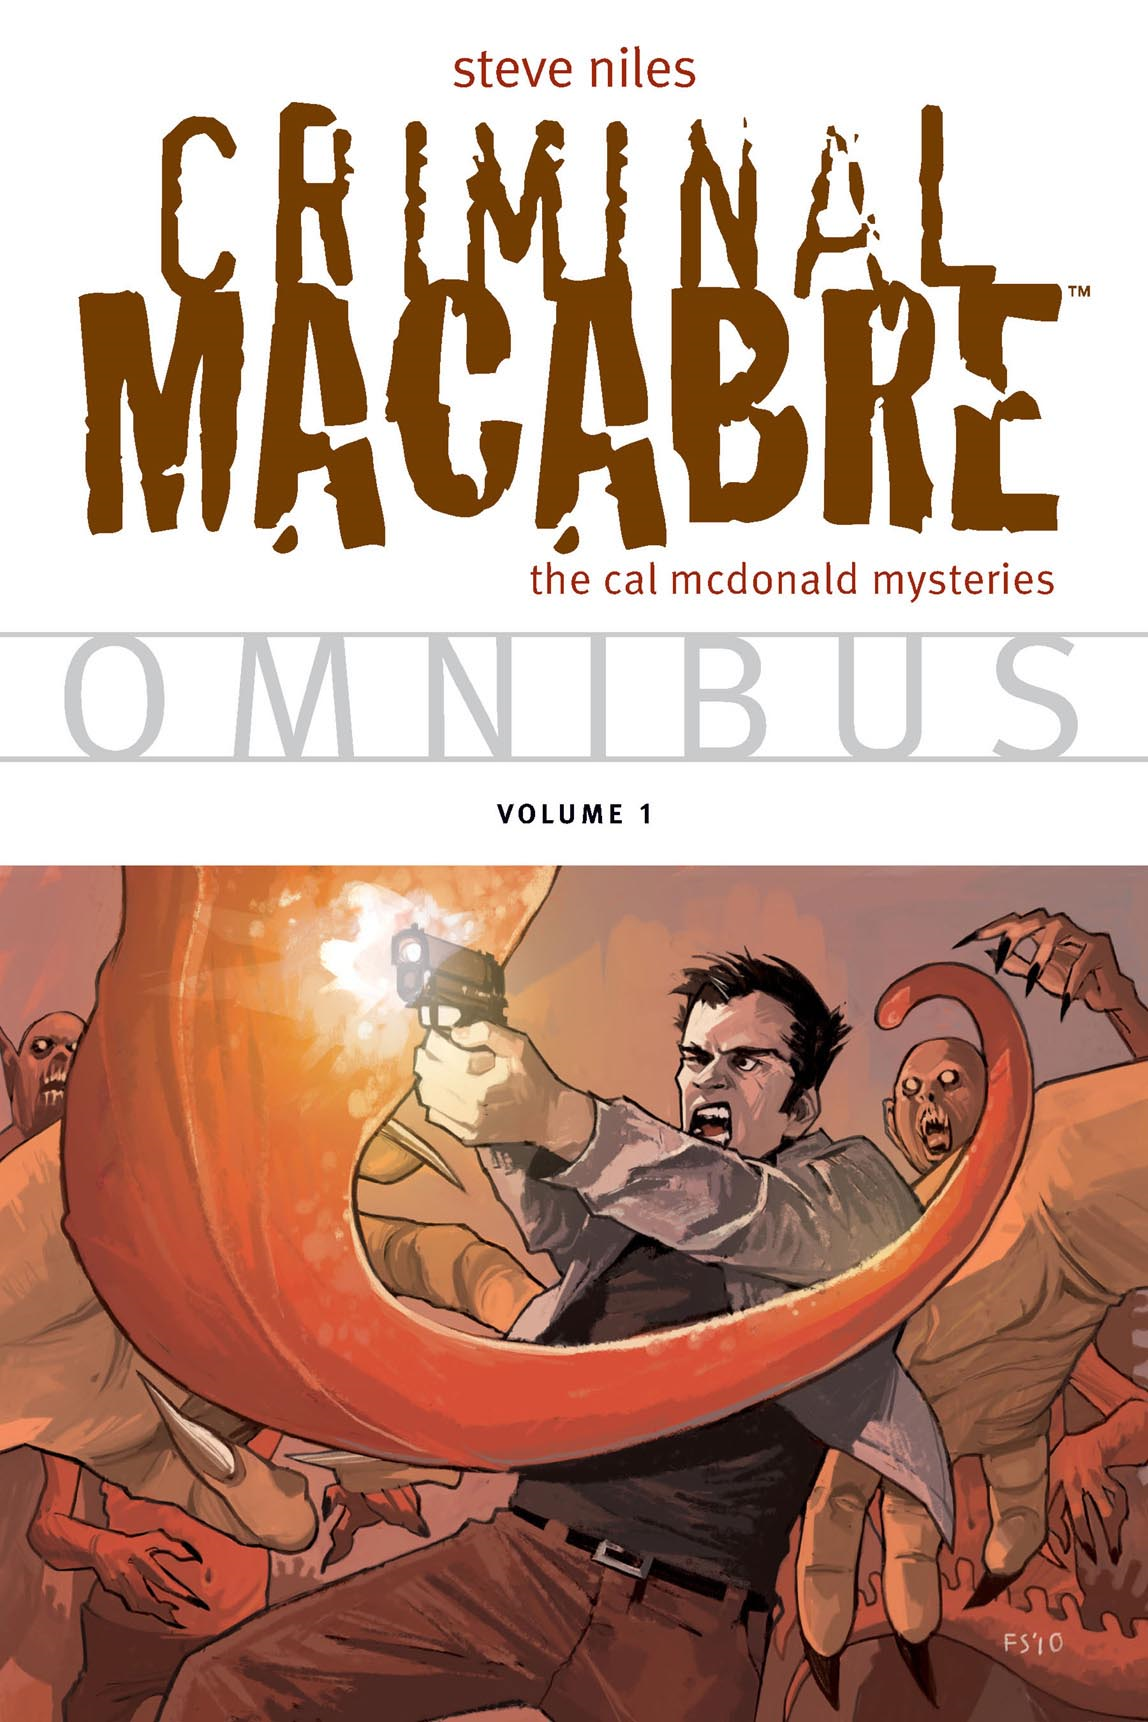 Criminal Macabre Omnibus  Volume 1 By: Steve Niles, Ben Templesmith (Artist), Kelley Jones (Artist), Fiona Staples (Cover Artist), Michelle Madsen (Colorist)